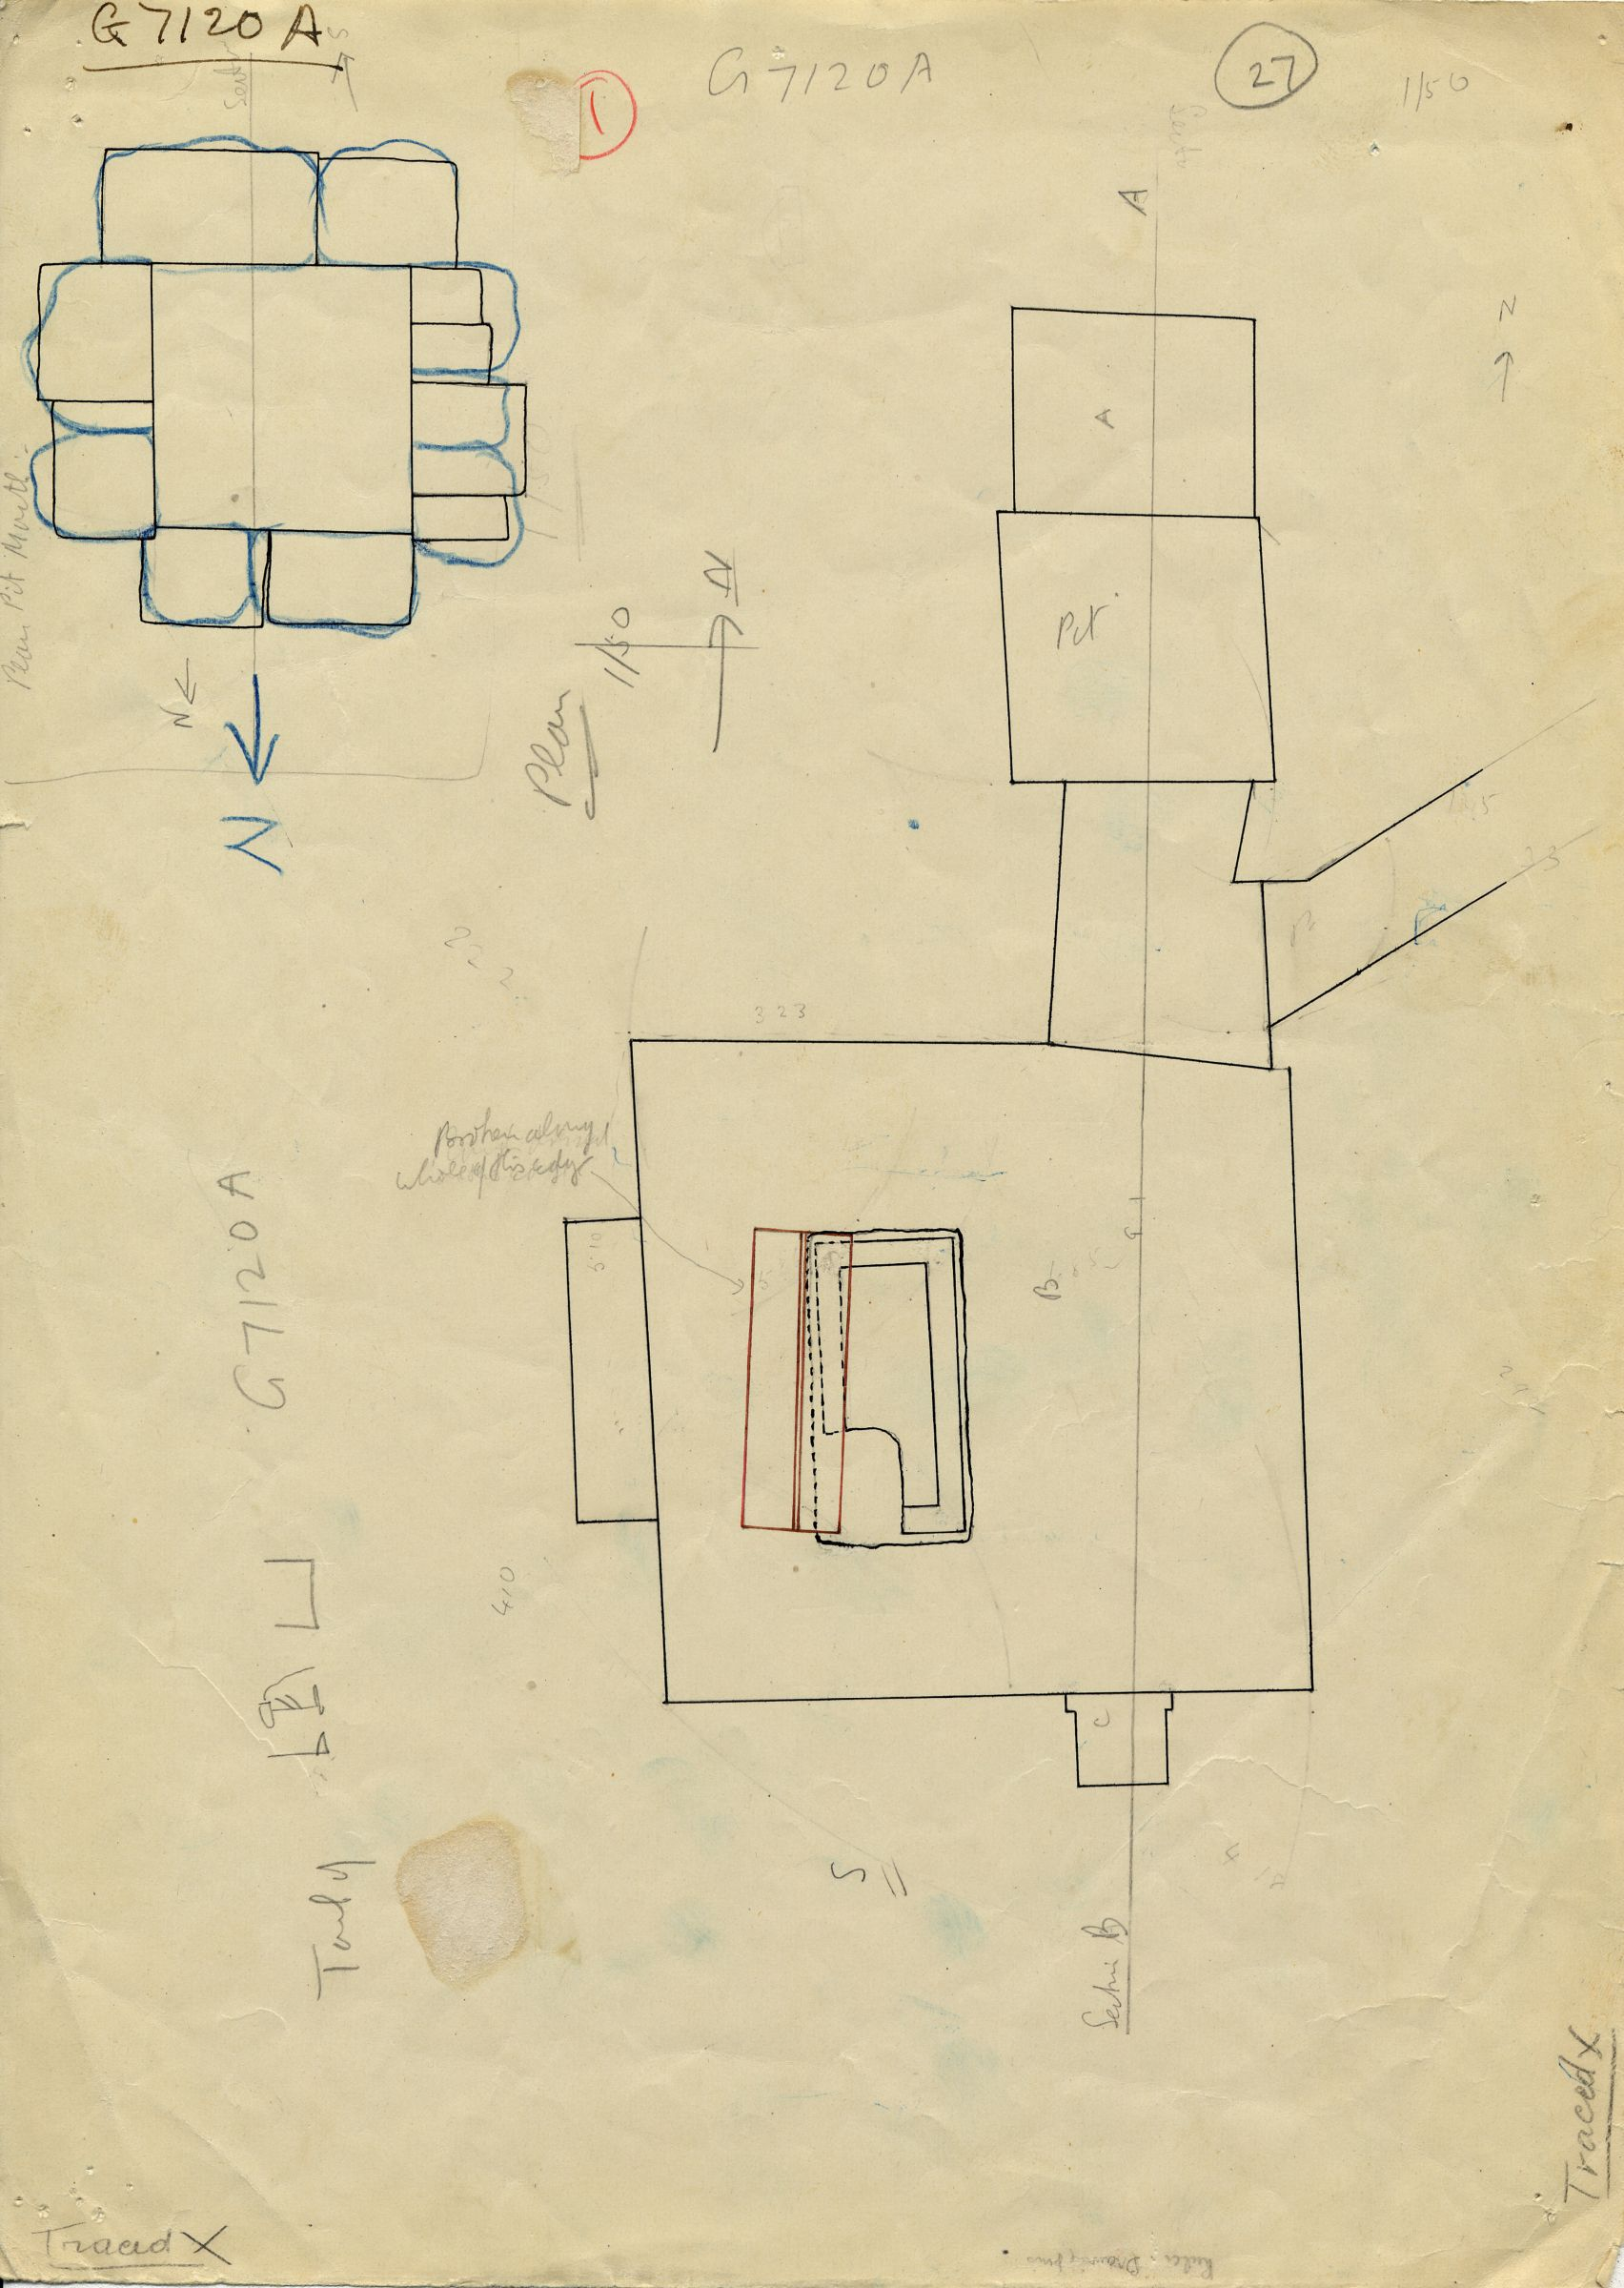 Maps and plans: G 7110-7120; G 7120, Shaft A